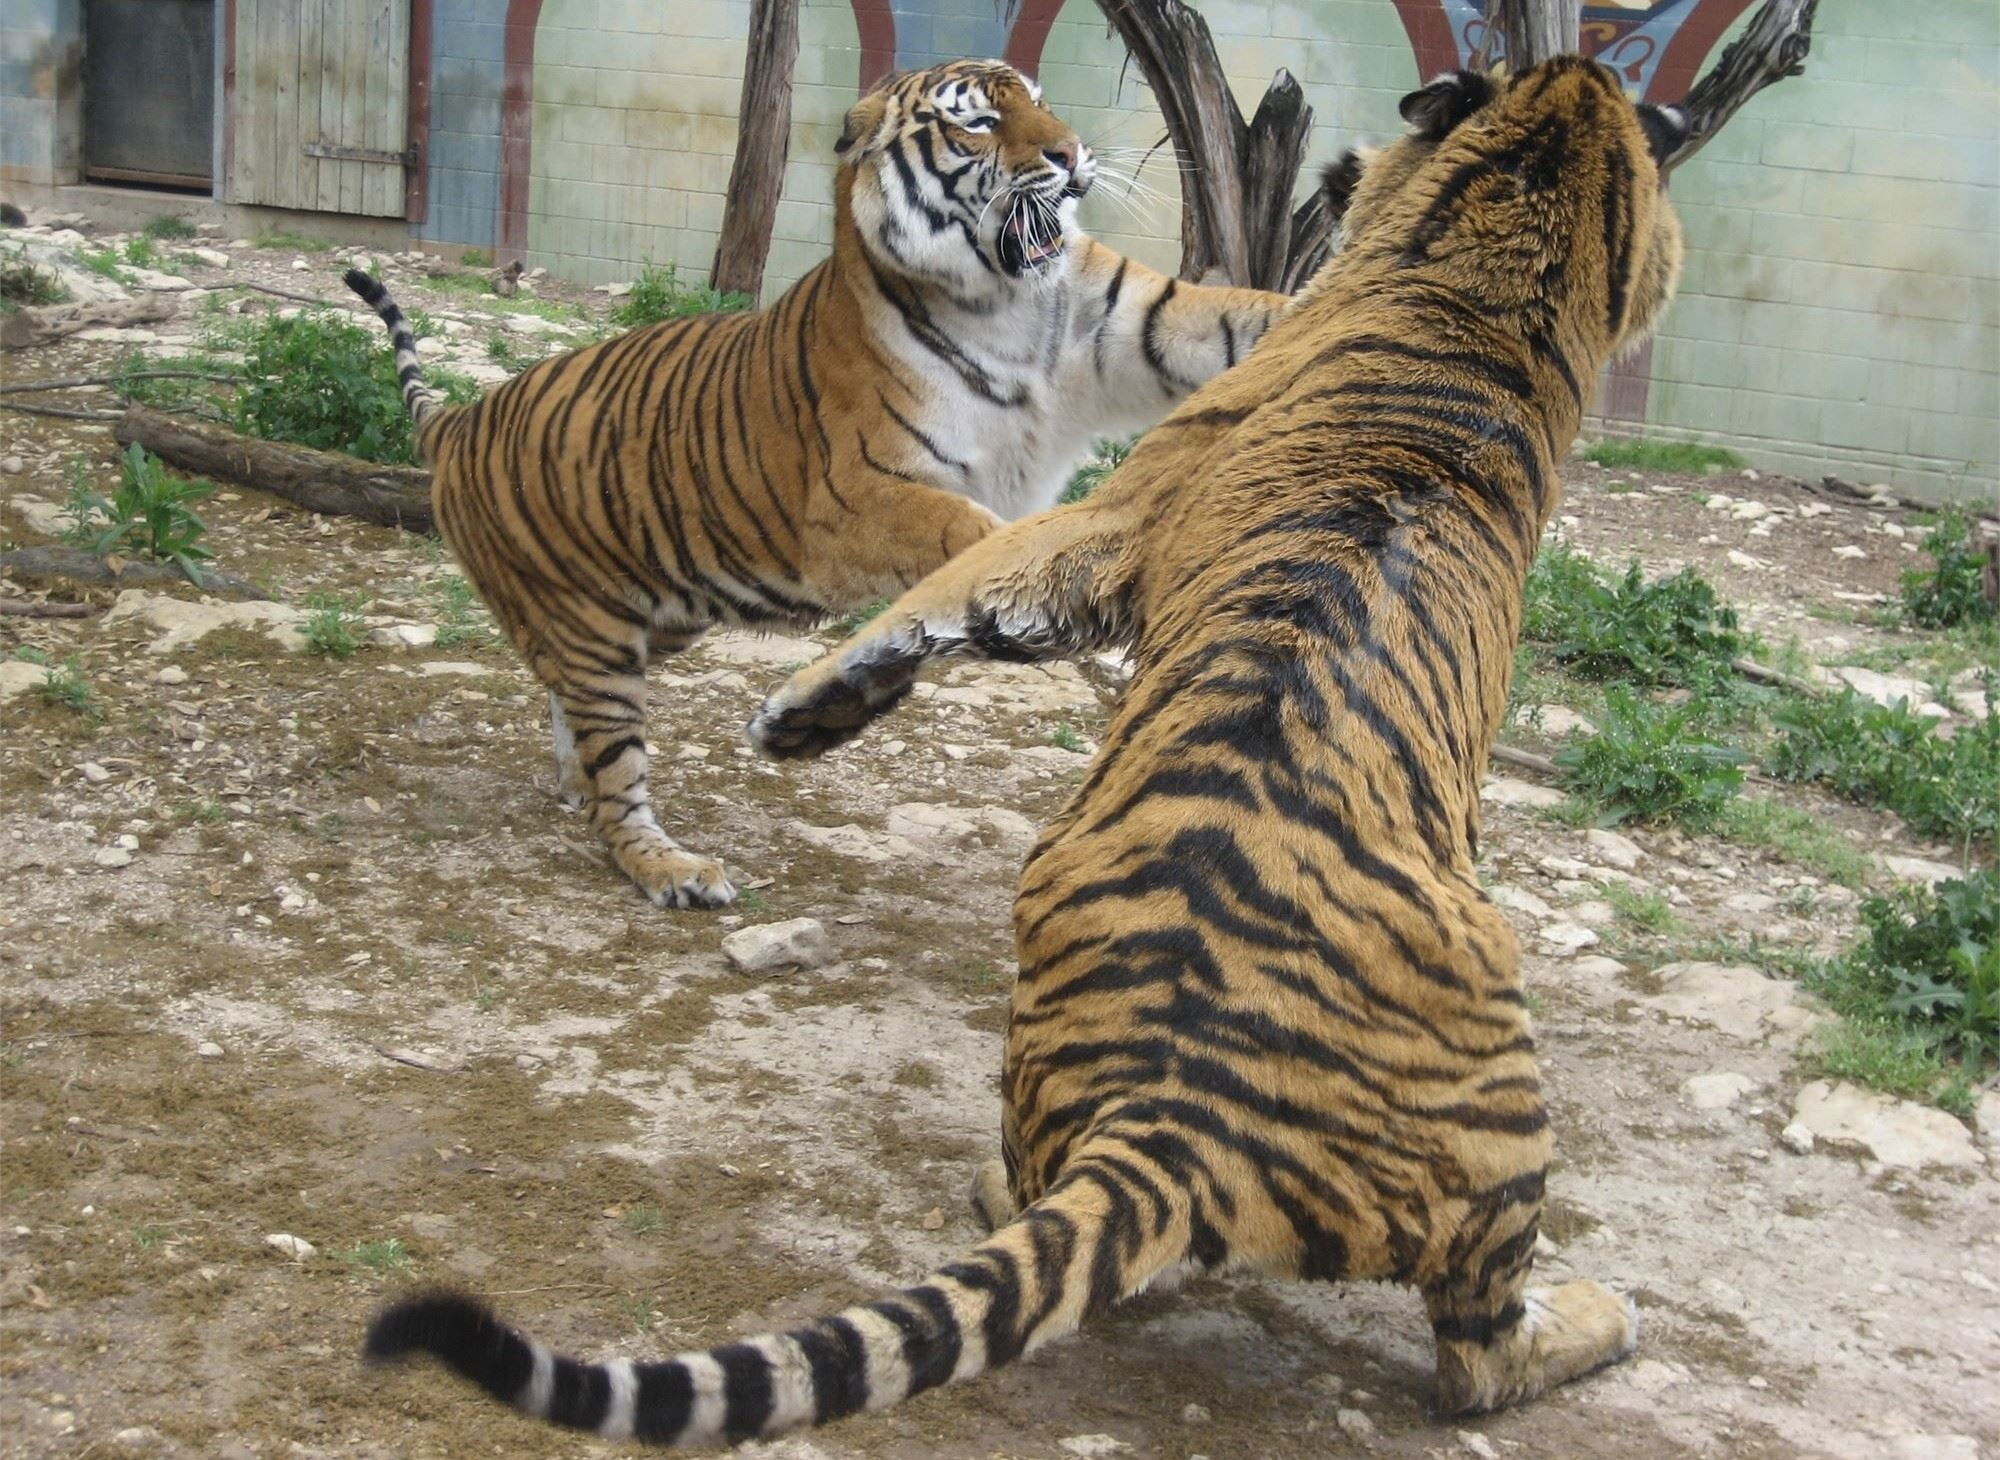 Two bengal tigers playing with each other